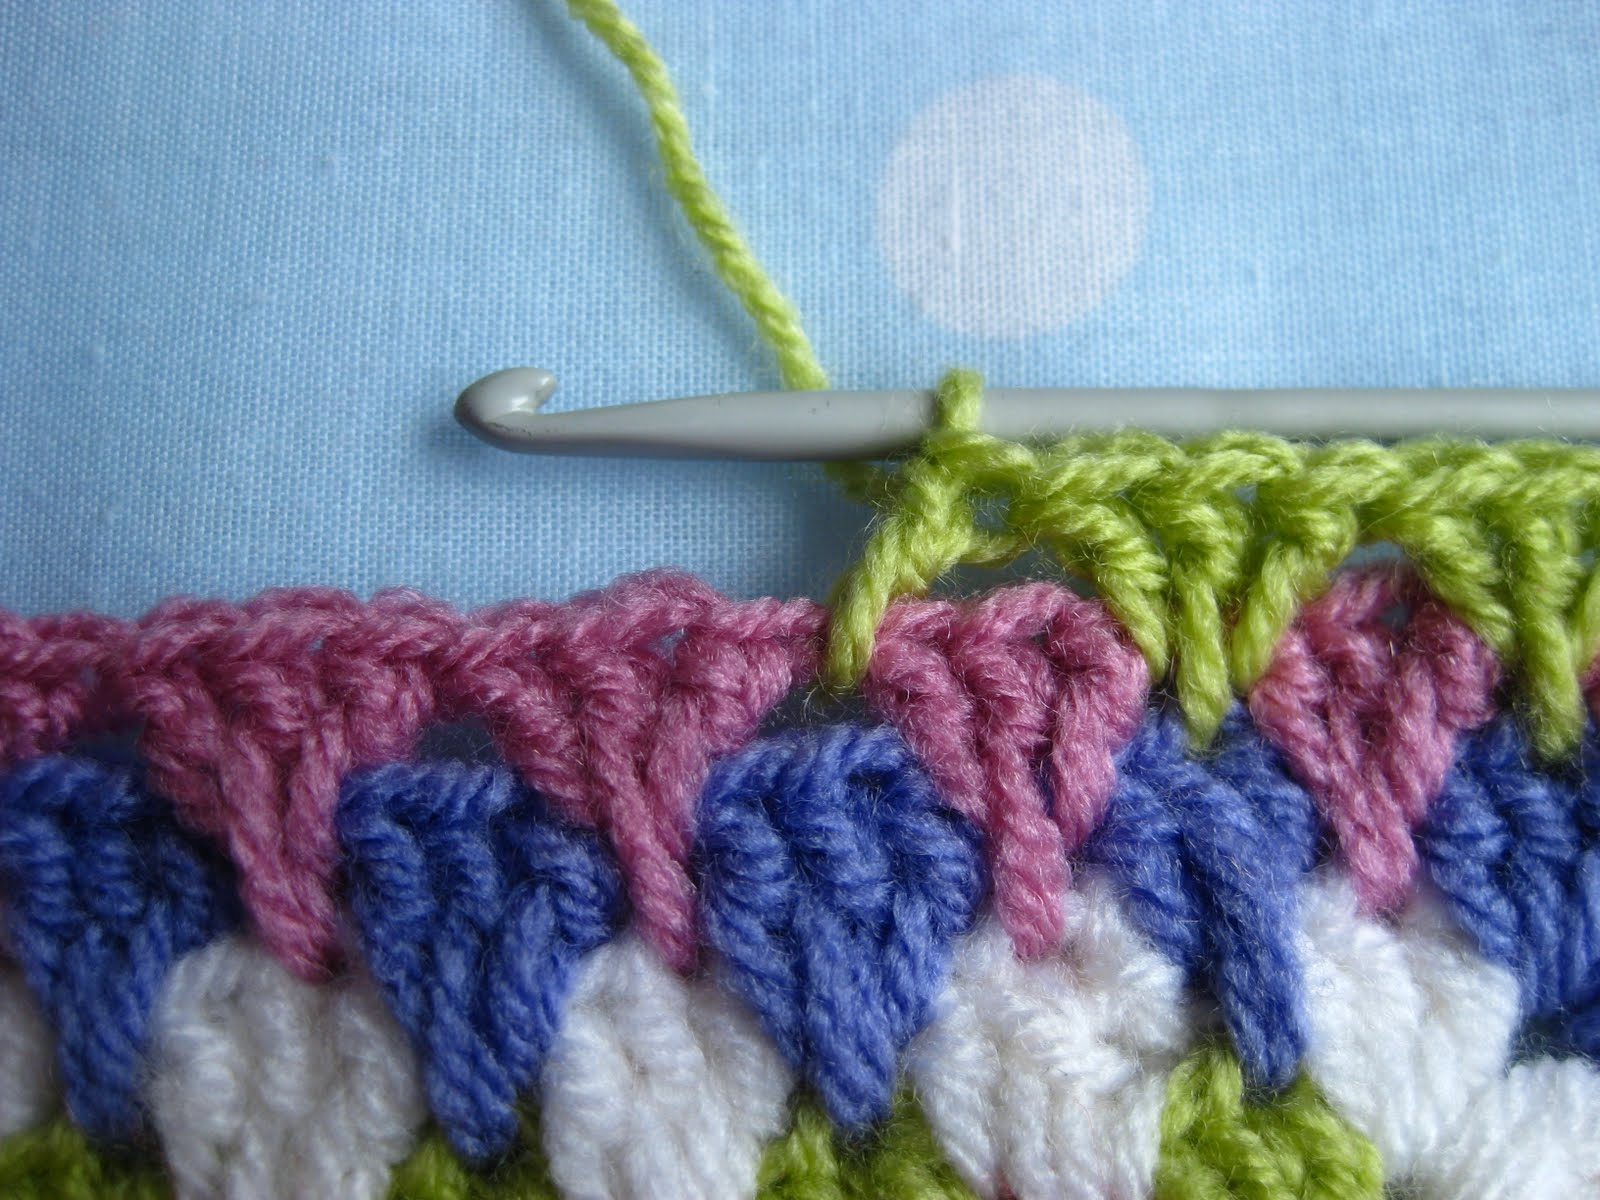 Crocheting Granny Stitch : ... crochet ( U.K.treble) as usual , into the space of the previous round